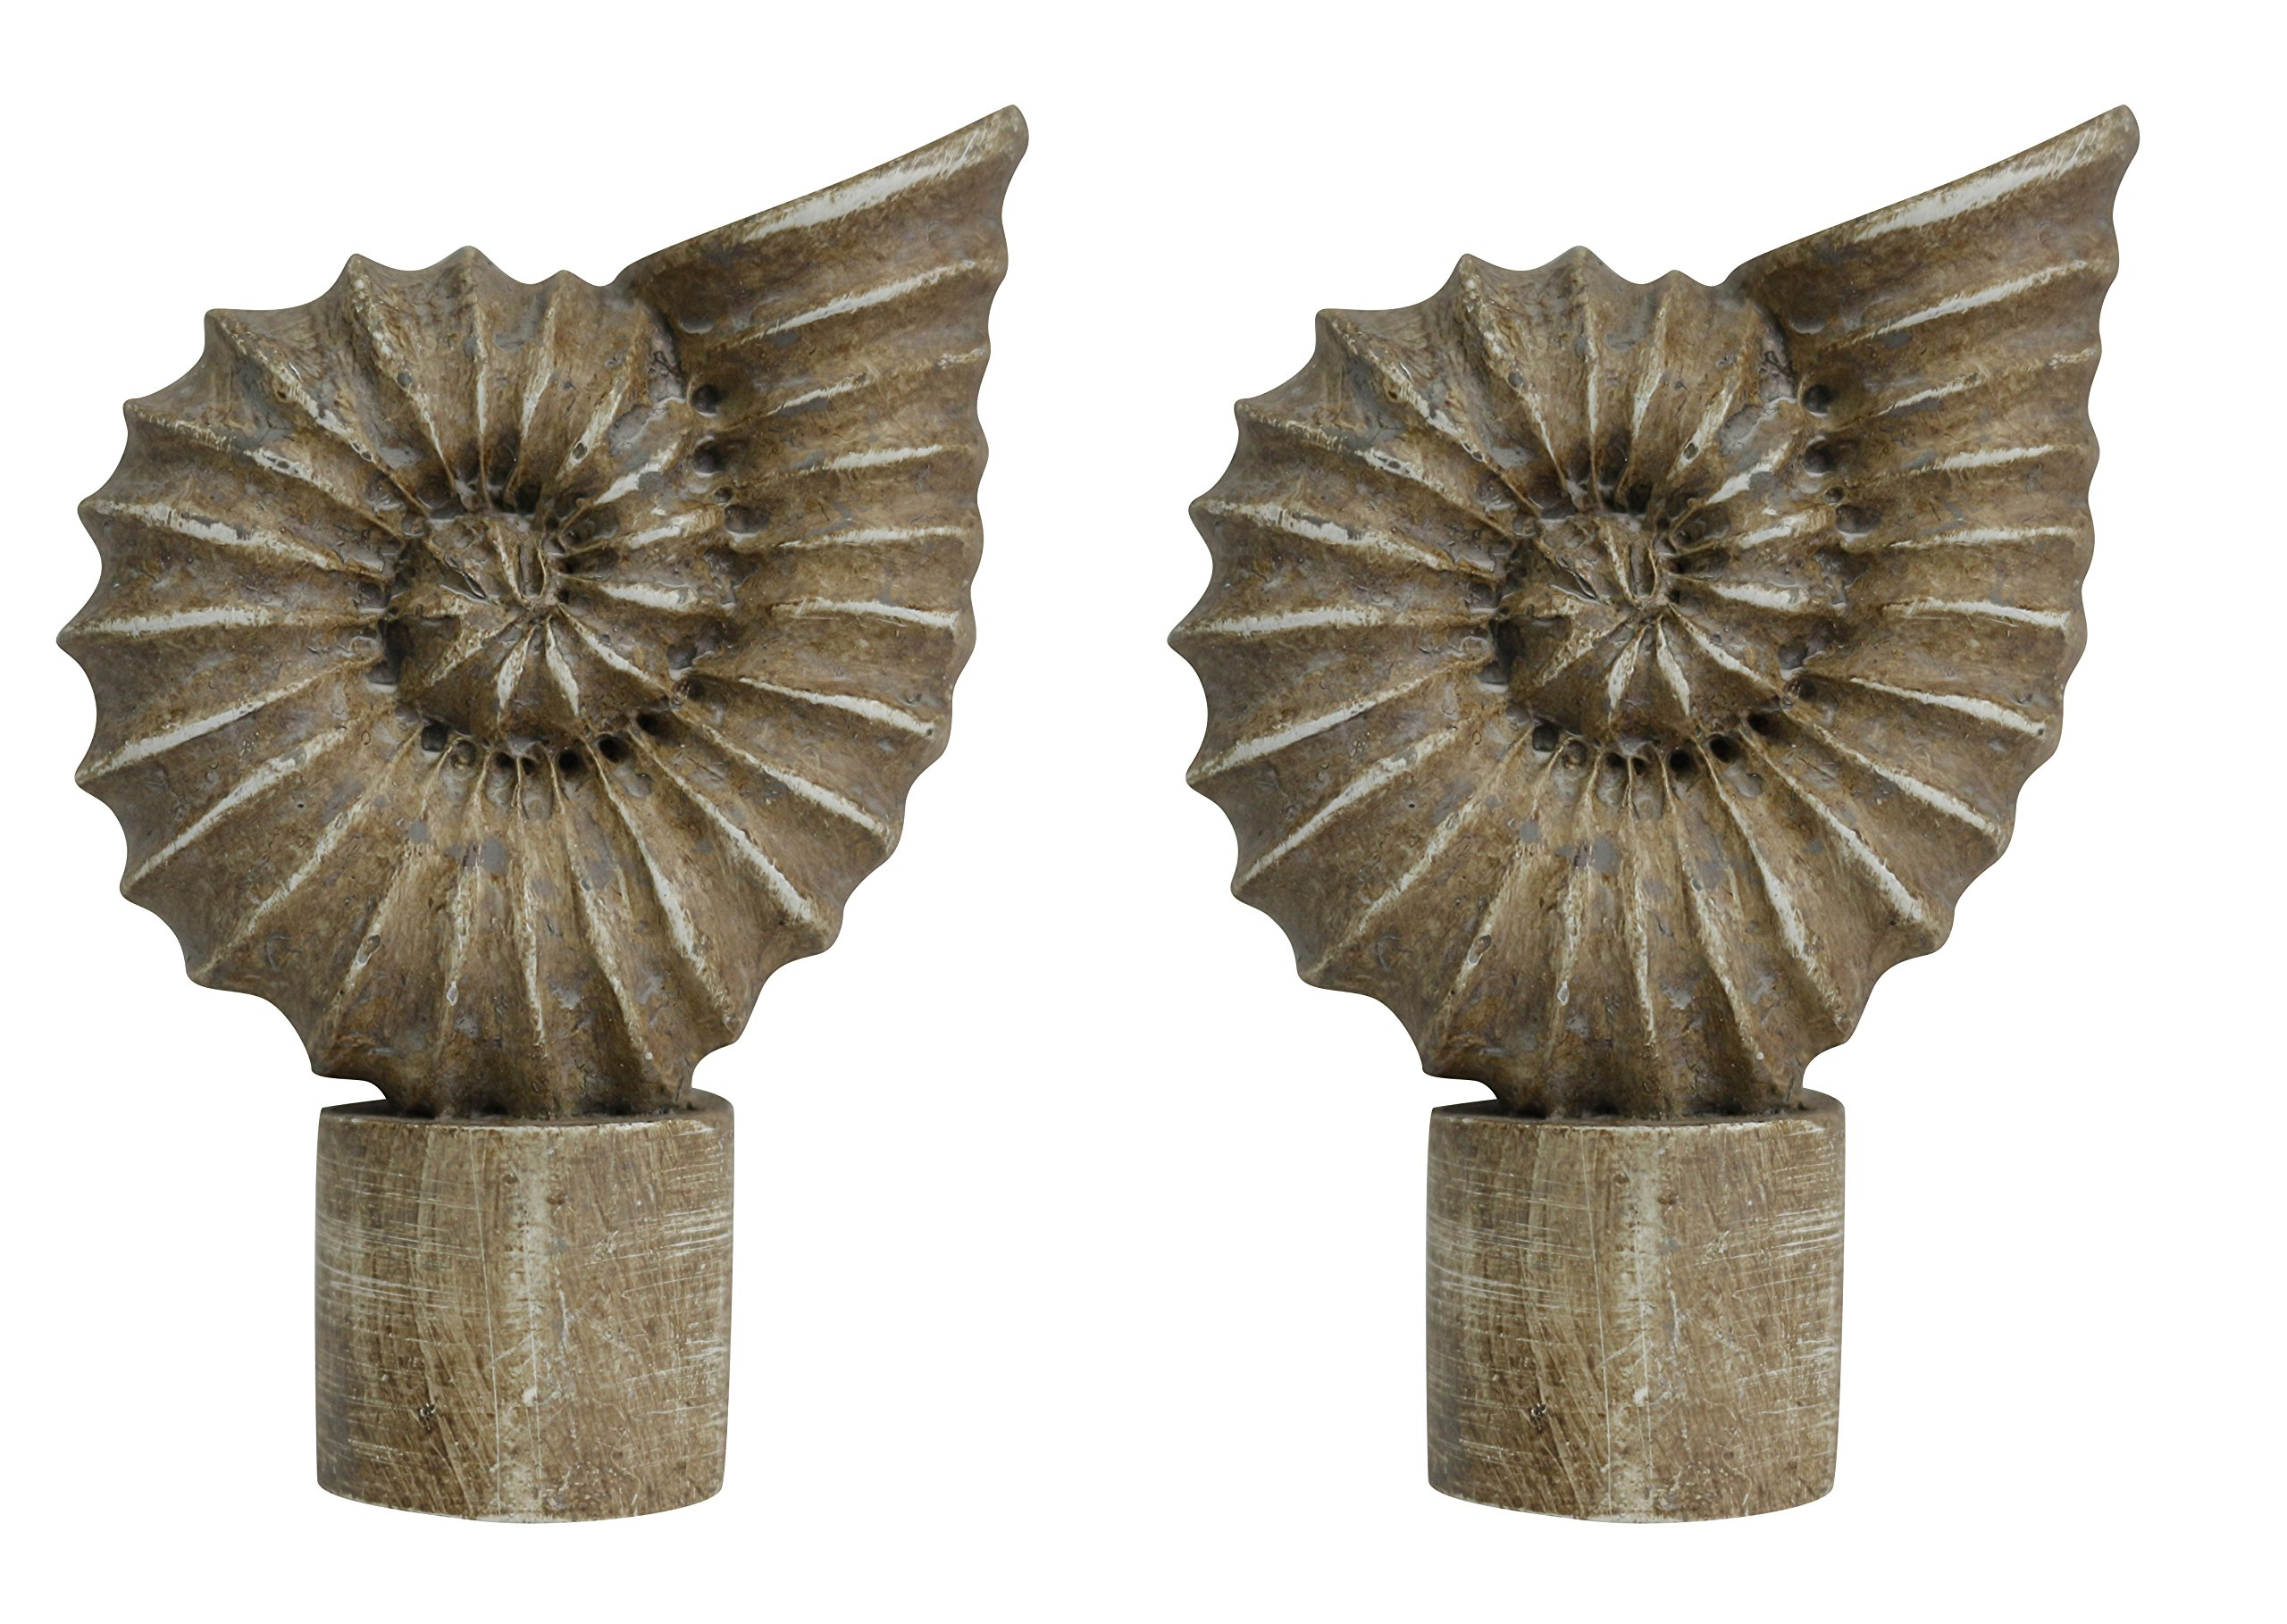 Urbanest Set of 2 Seashell Finial, 2 5/8-inch Tall, Cottage